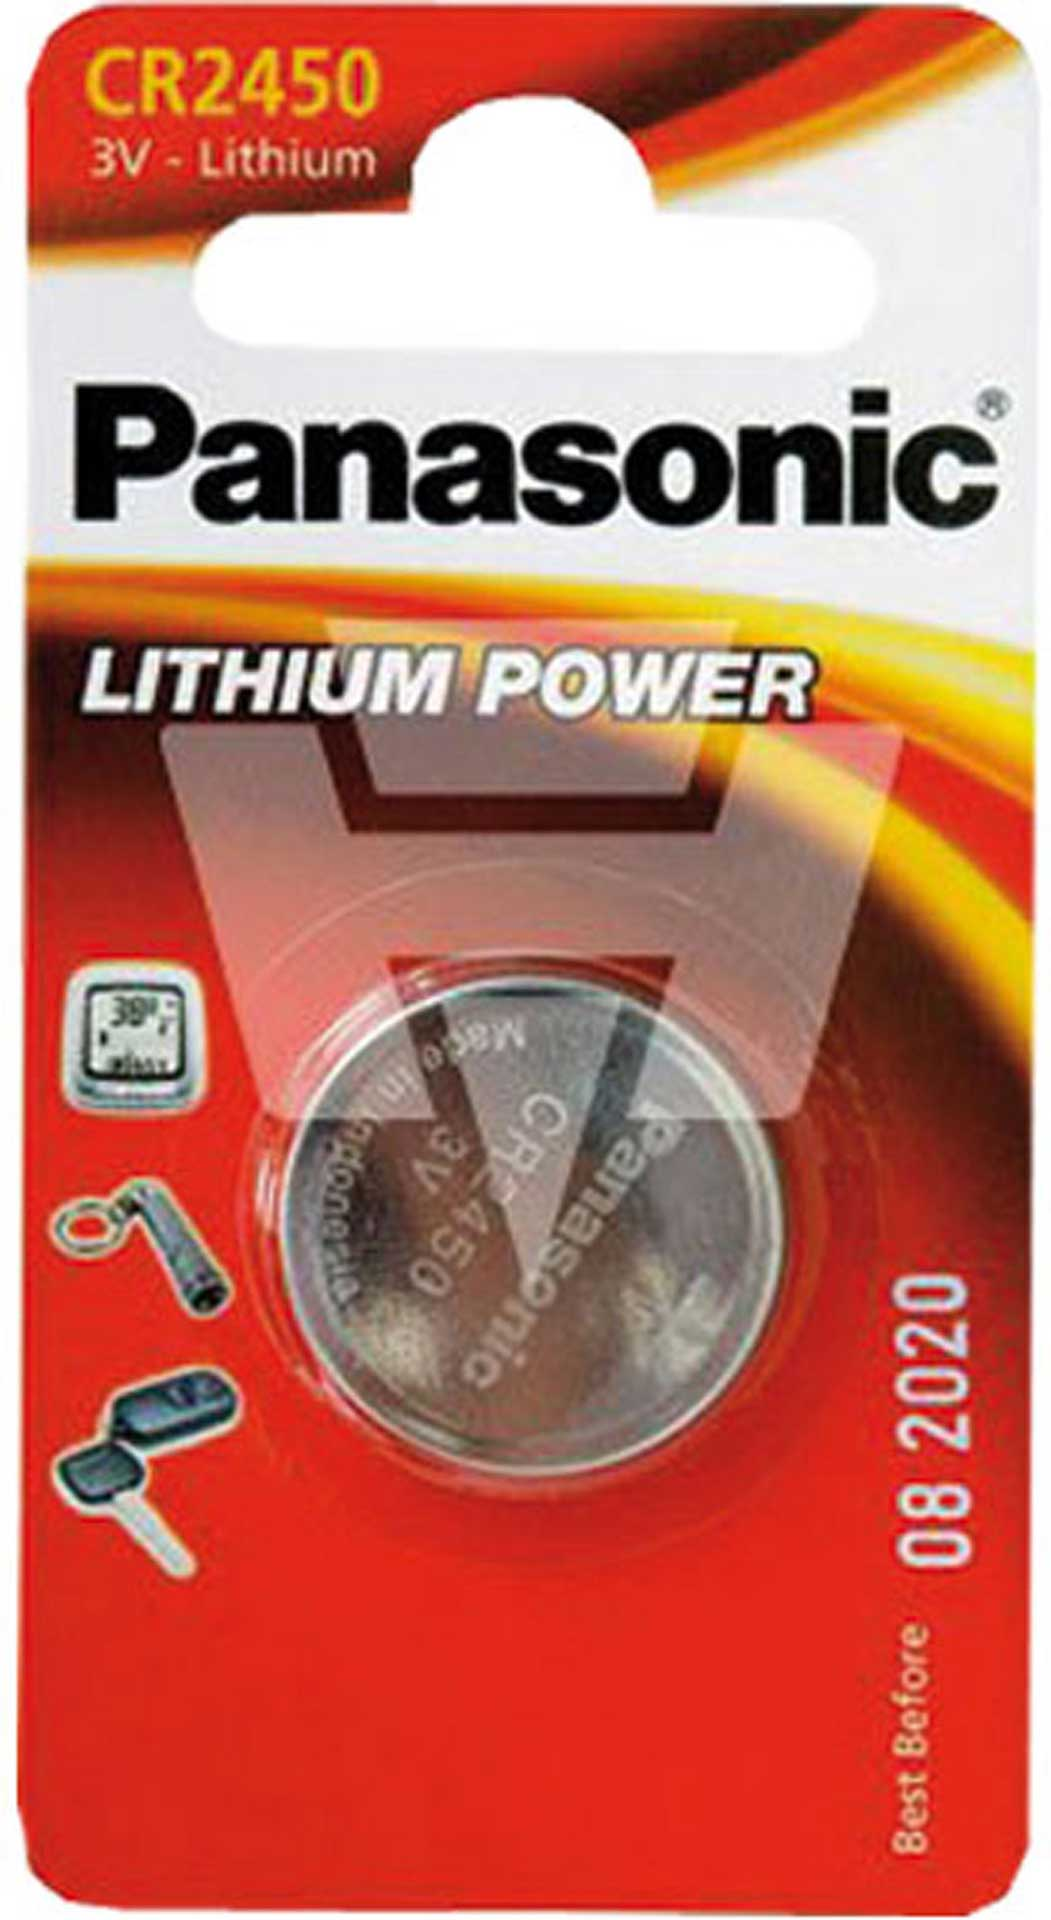 PANASONIC LITHIUM BUTTON CELL BATTERY CR2450 3V 1 PCS